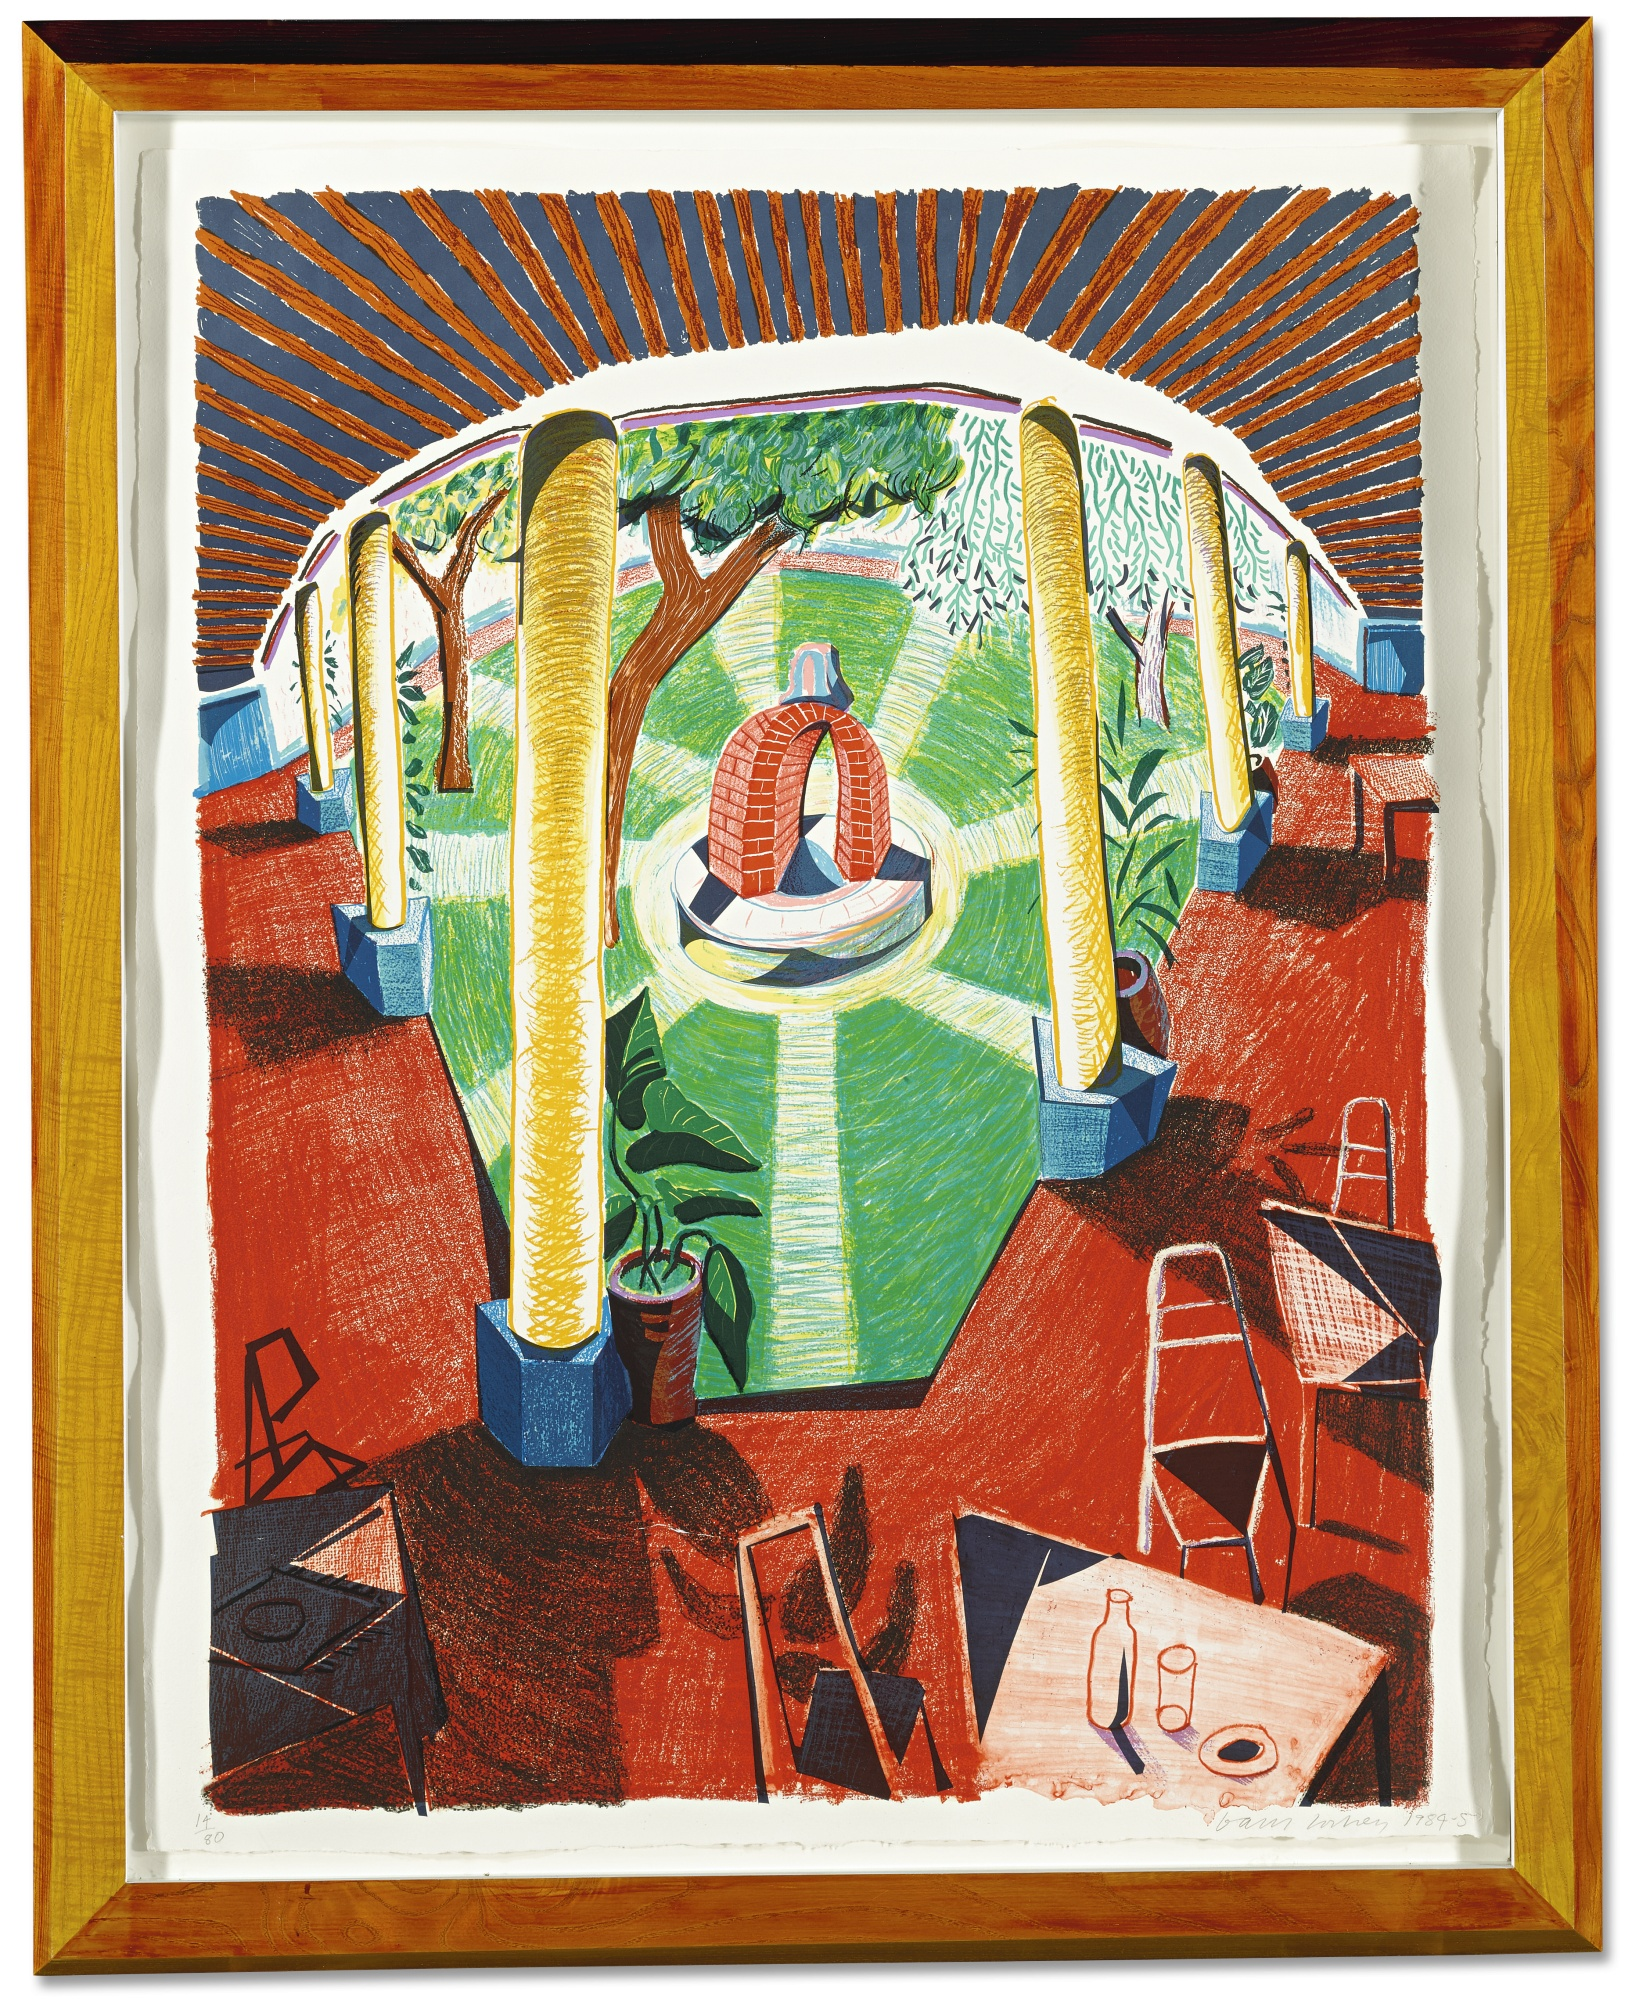 David Hockney-View Of Hotel Well III (M.C.A.T. 274)-1985